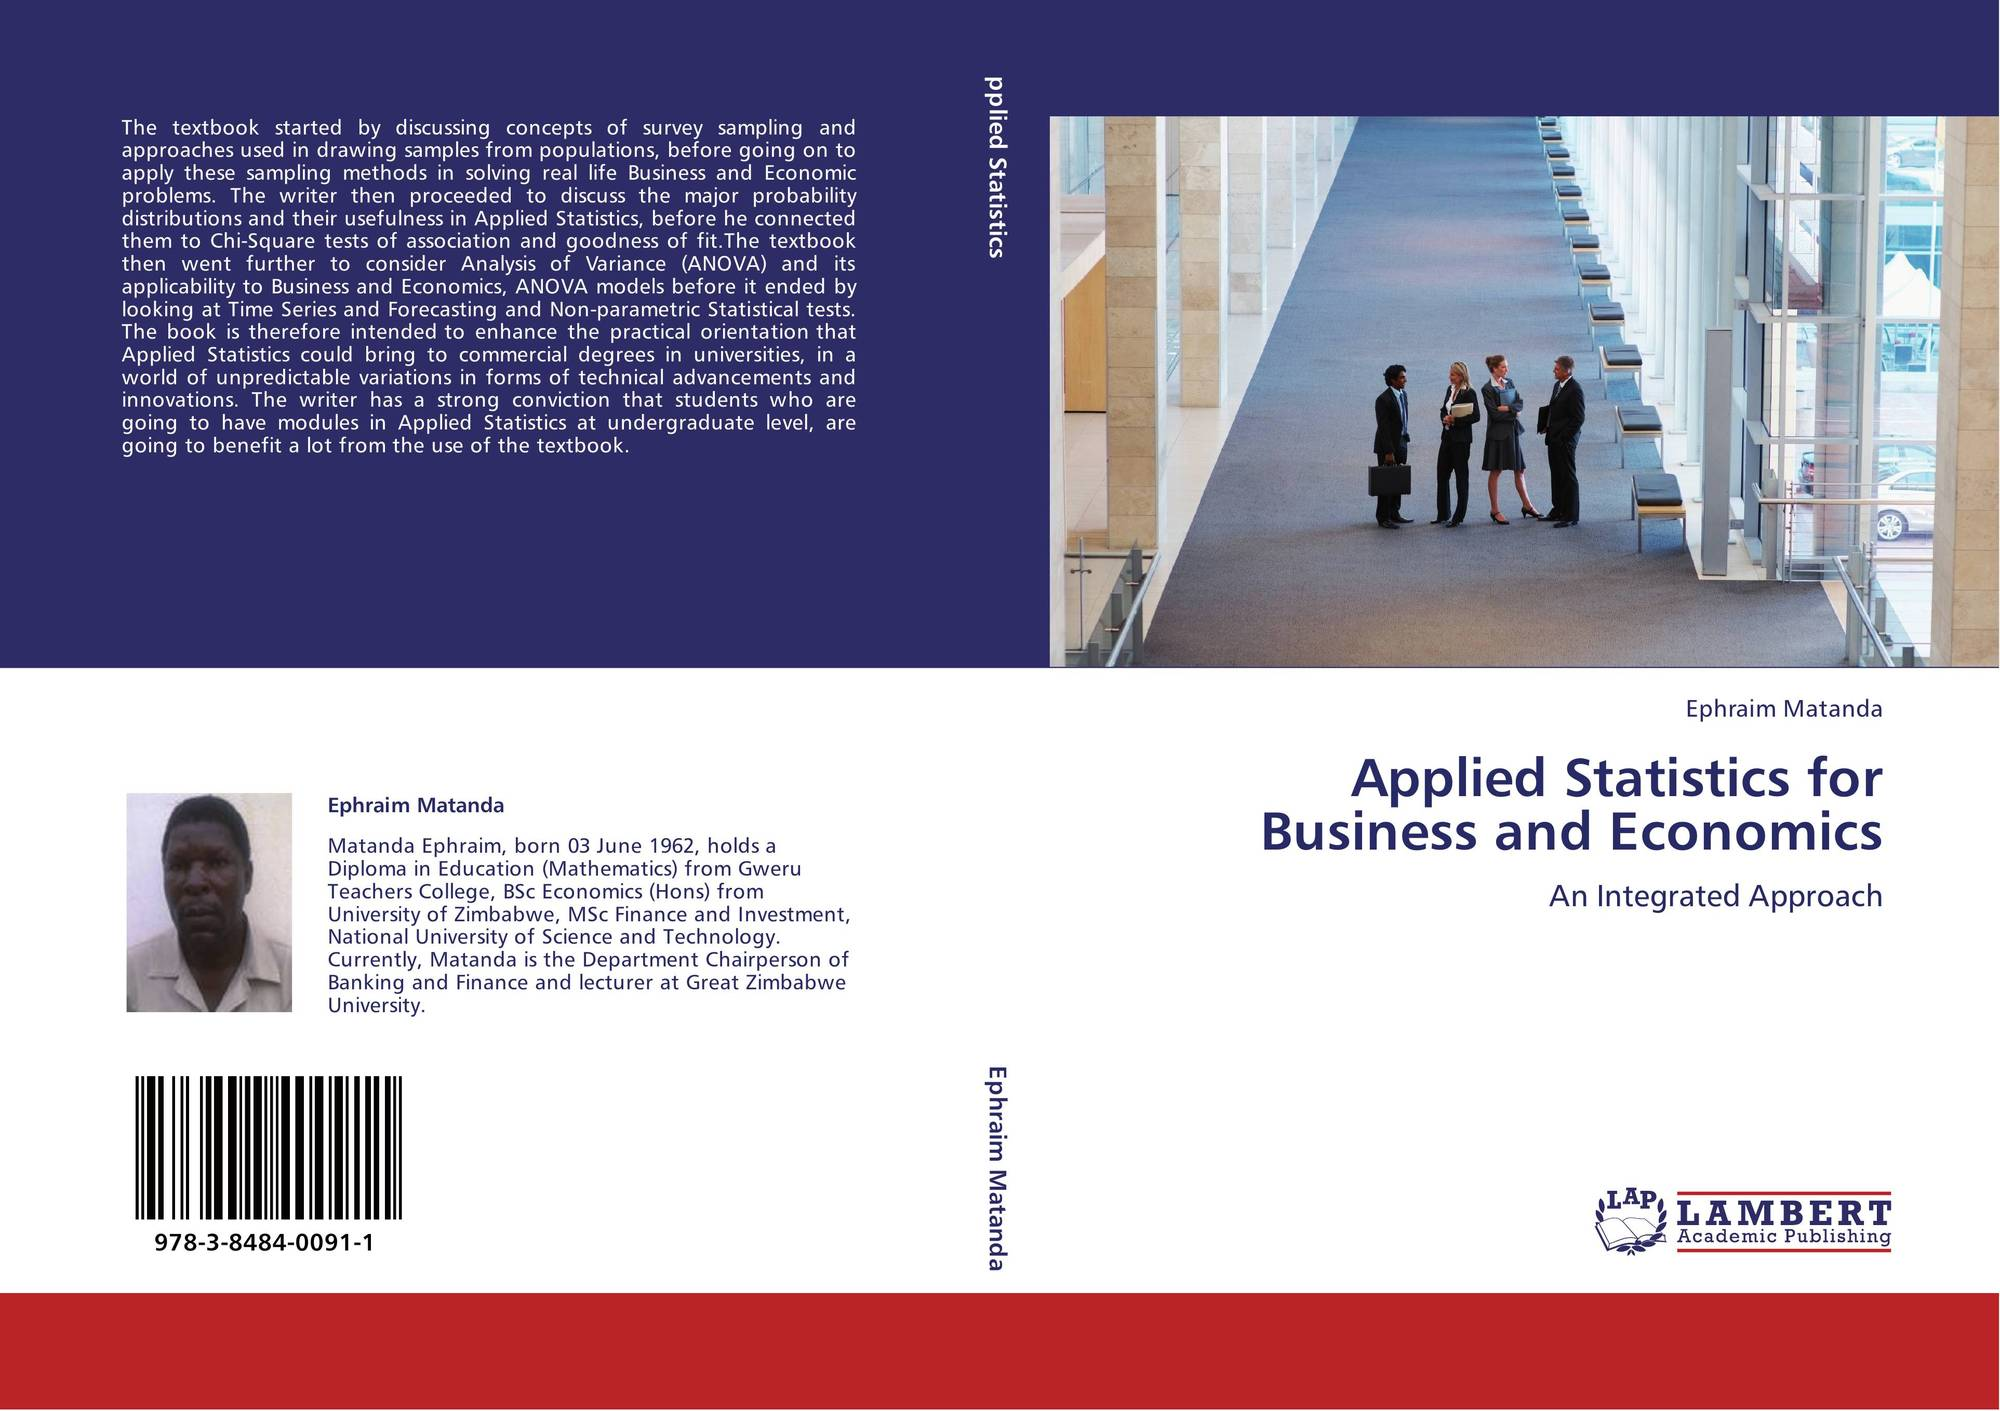 Applied Statistics for Business and Economics, 978-3-8484